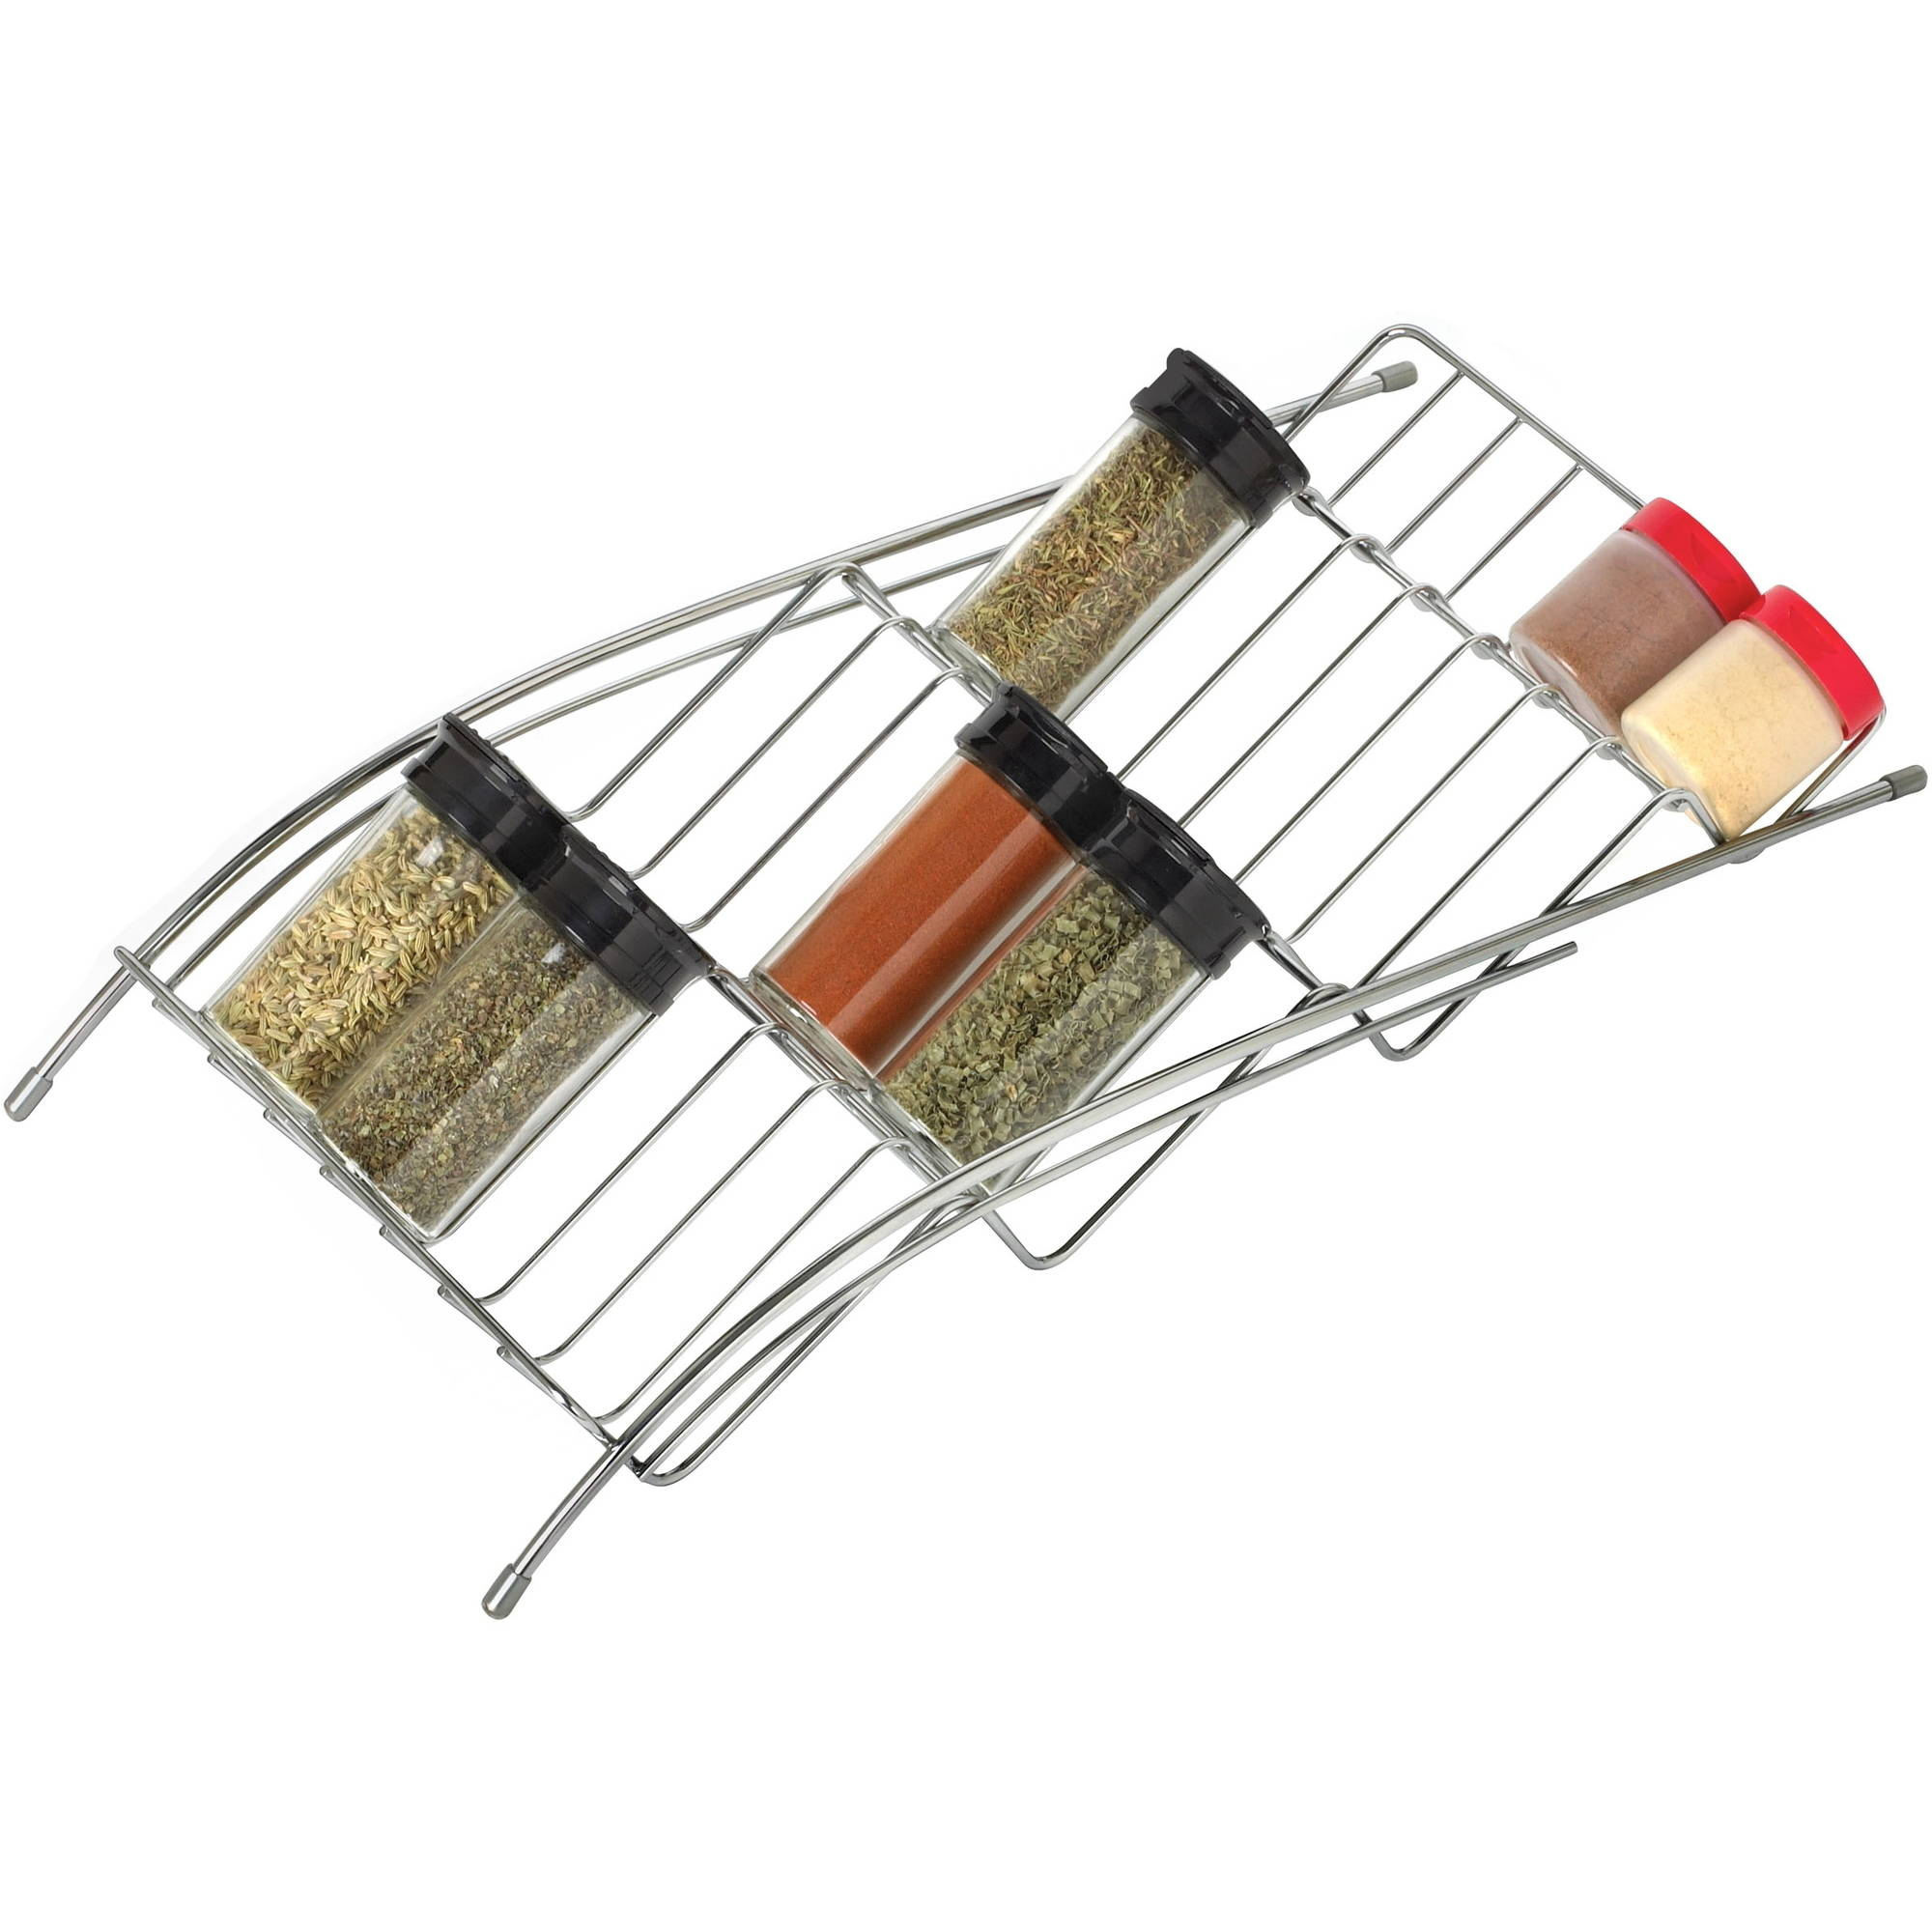 Spectrum In-Drawer Spice Rack, Chrome